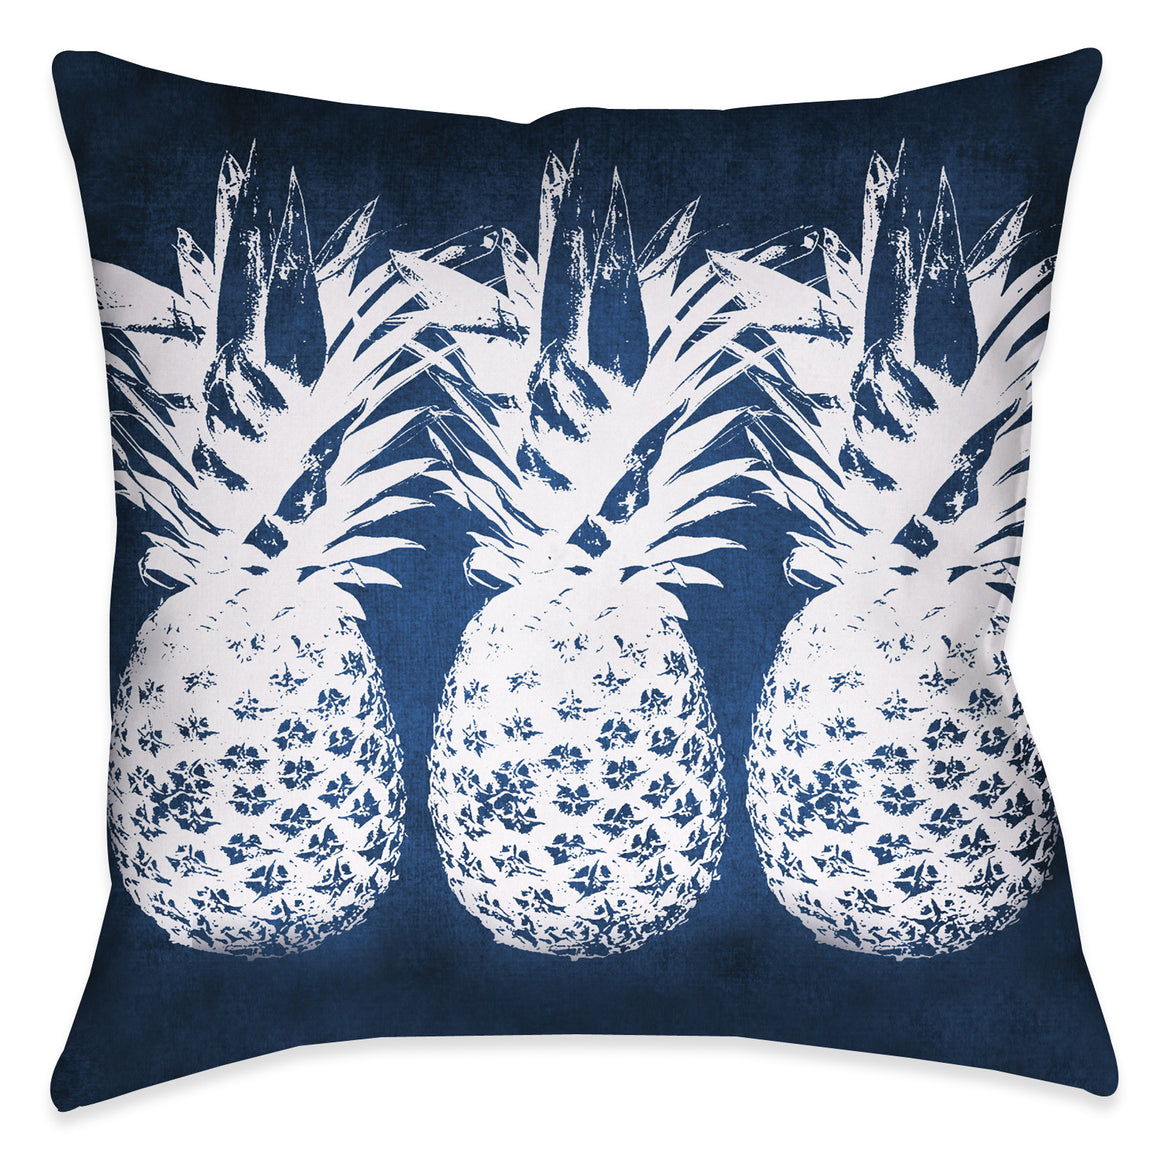 Indigo Pineapple Throw Pillow